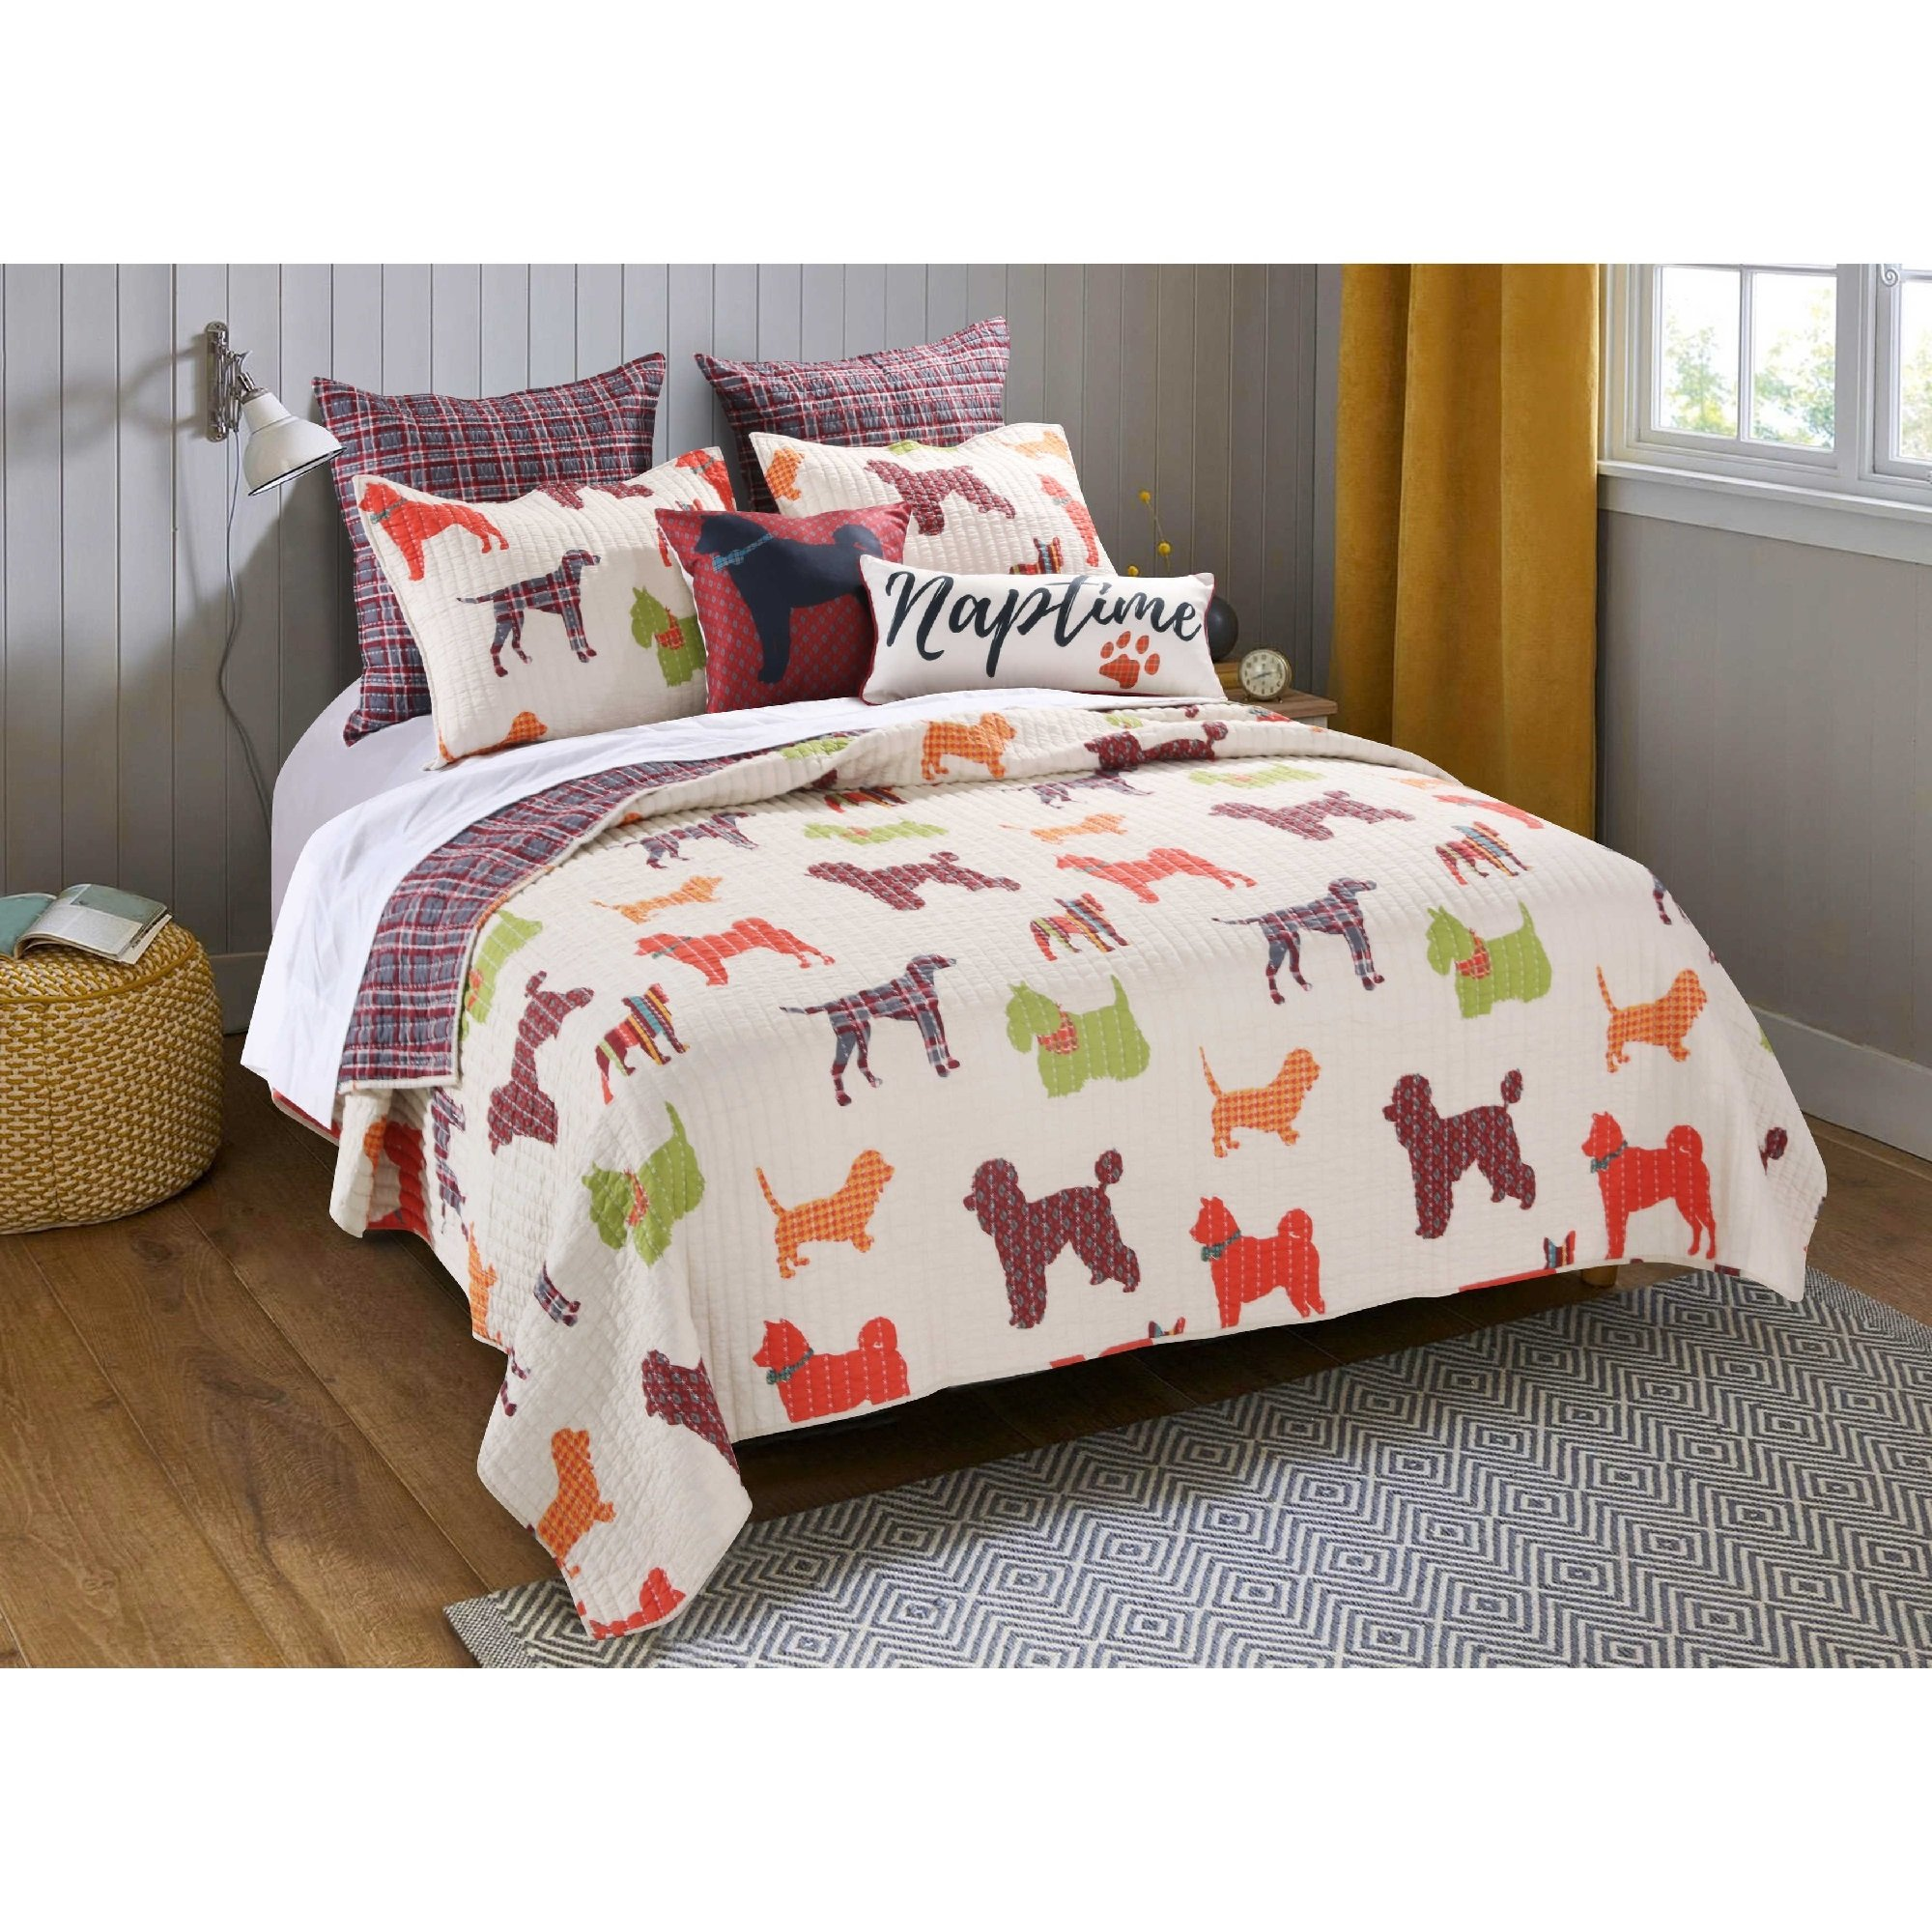 2 Piece Colorful Doggy Breeds Design Reversible Quilt Set Twin Size, Printed Graphic Poodle Dushanbe Bulldogs Terriers Bedding, Reverse Geometric Checkered Themed, Bright Animals Pattern, Red, Cream